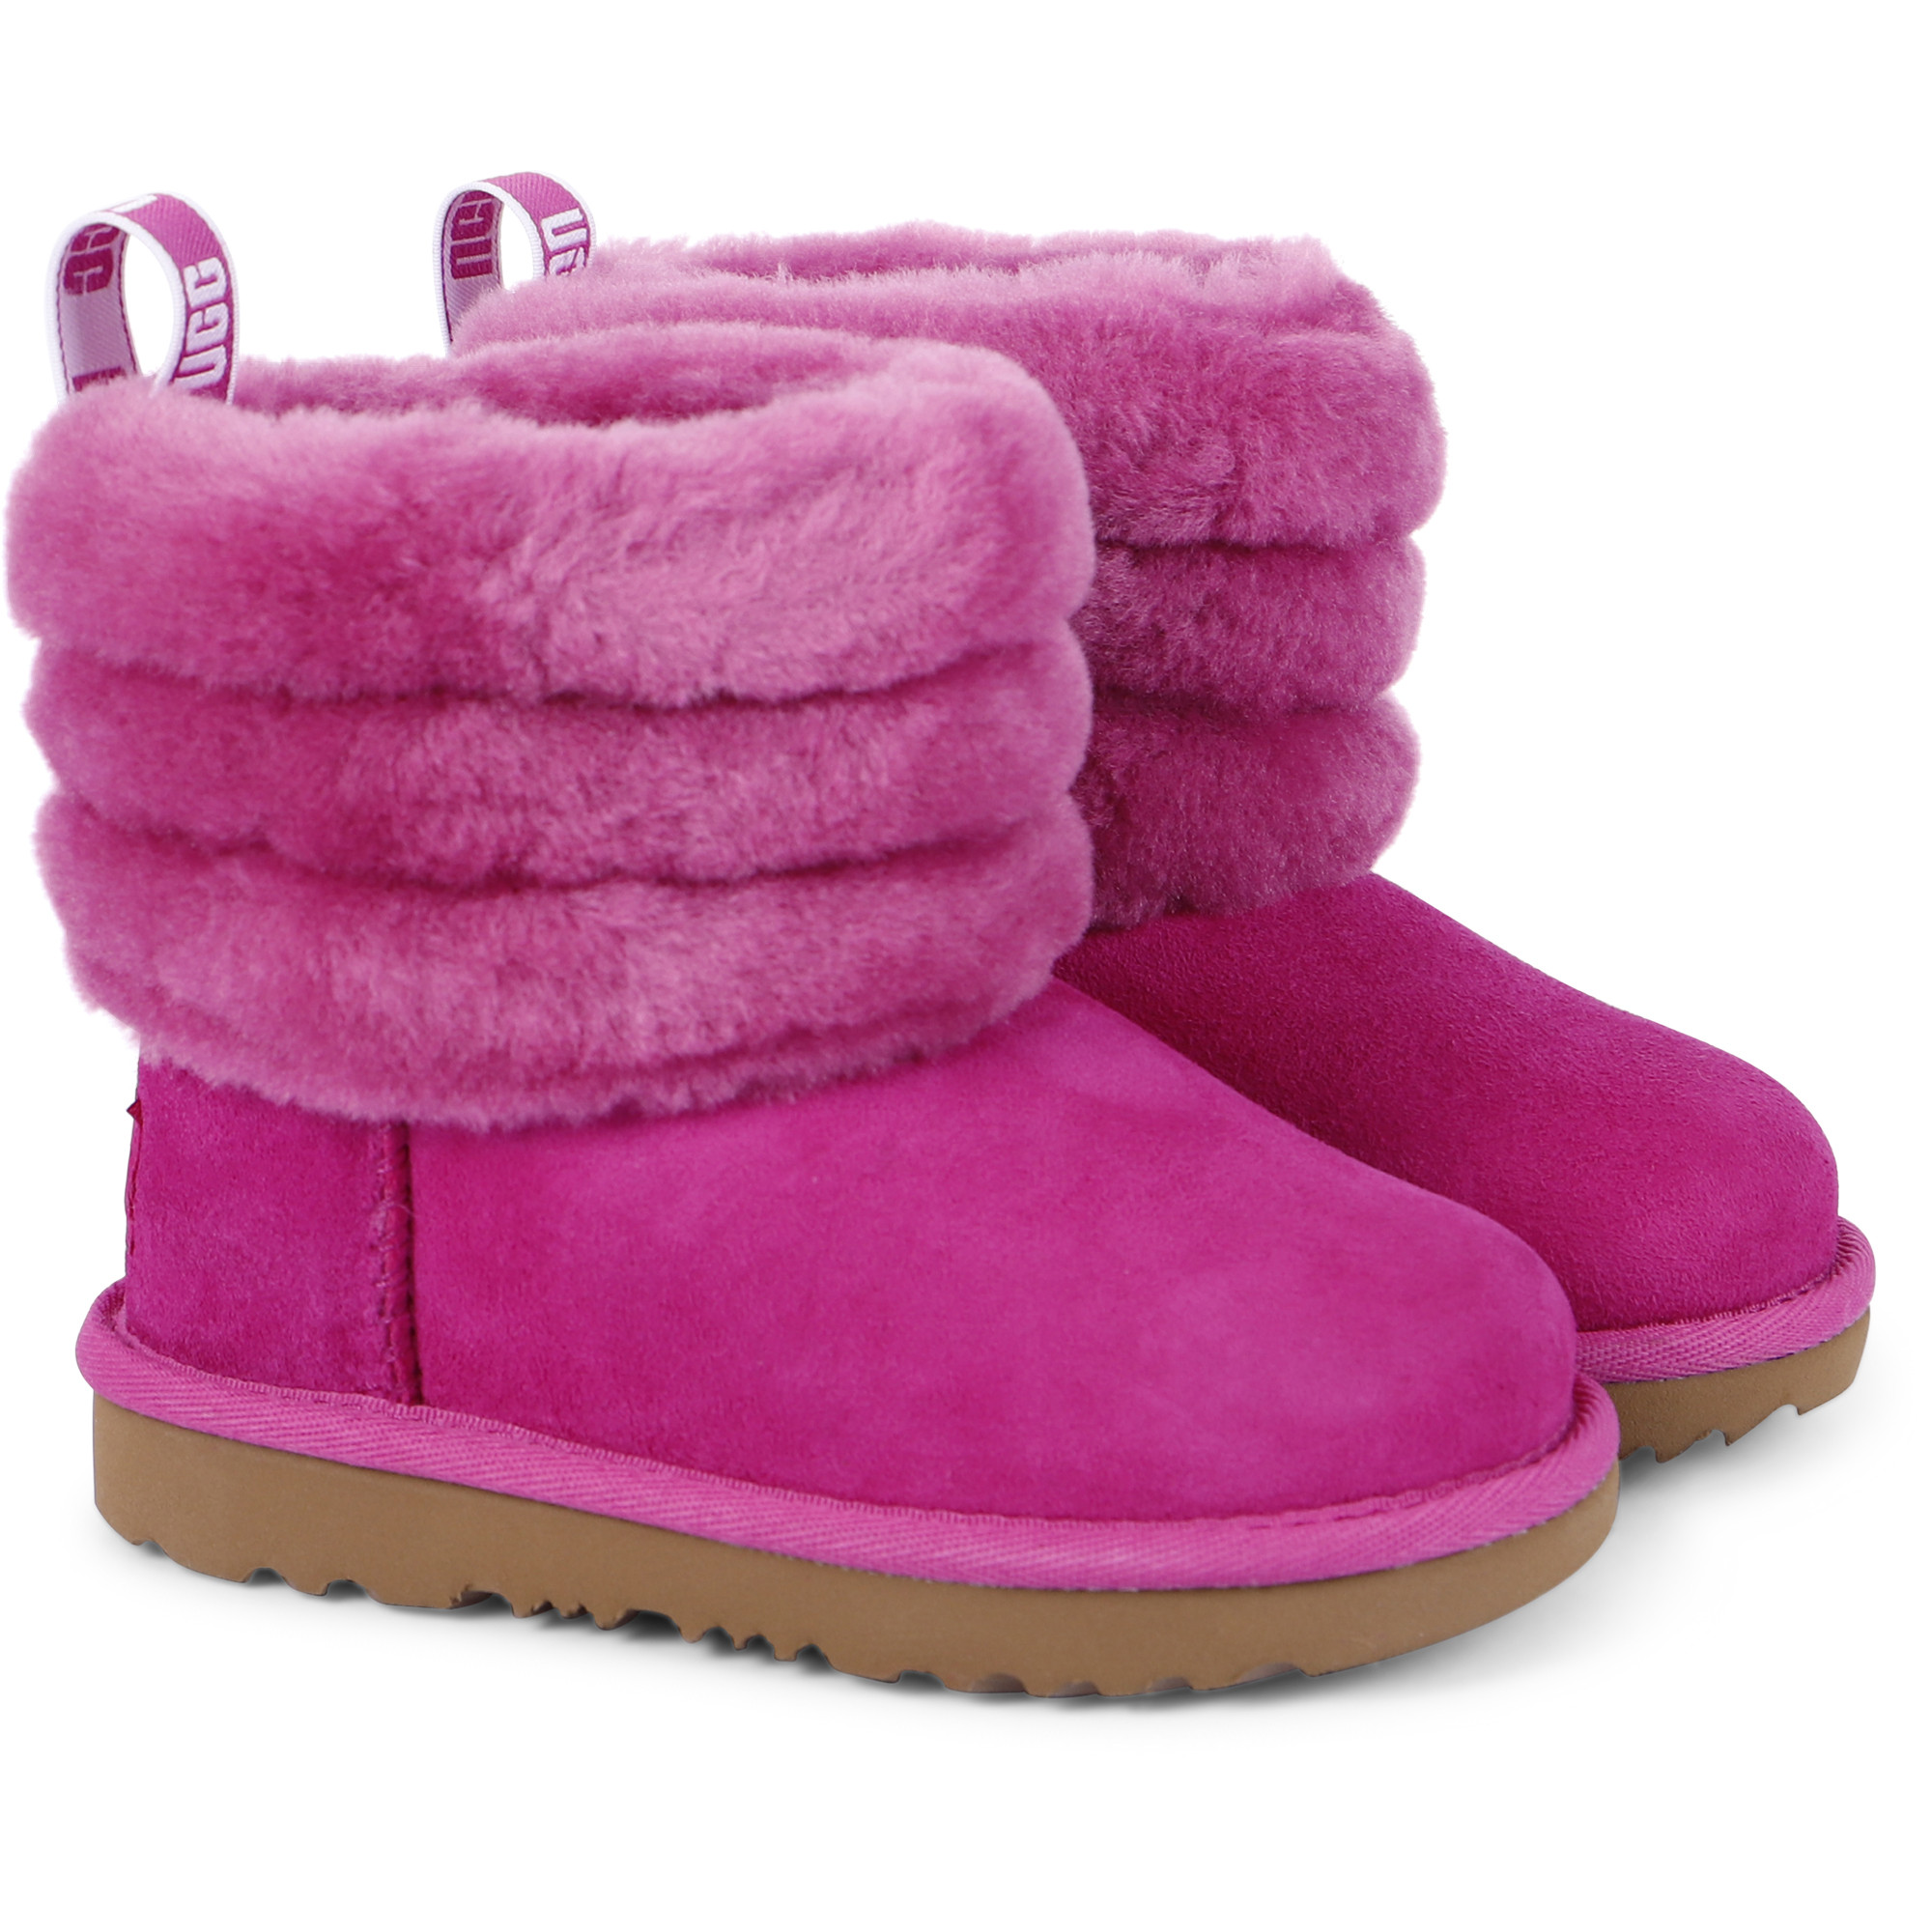 UGG Girls Furry Roll Boots in Pink